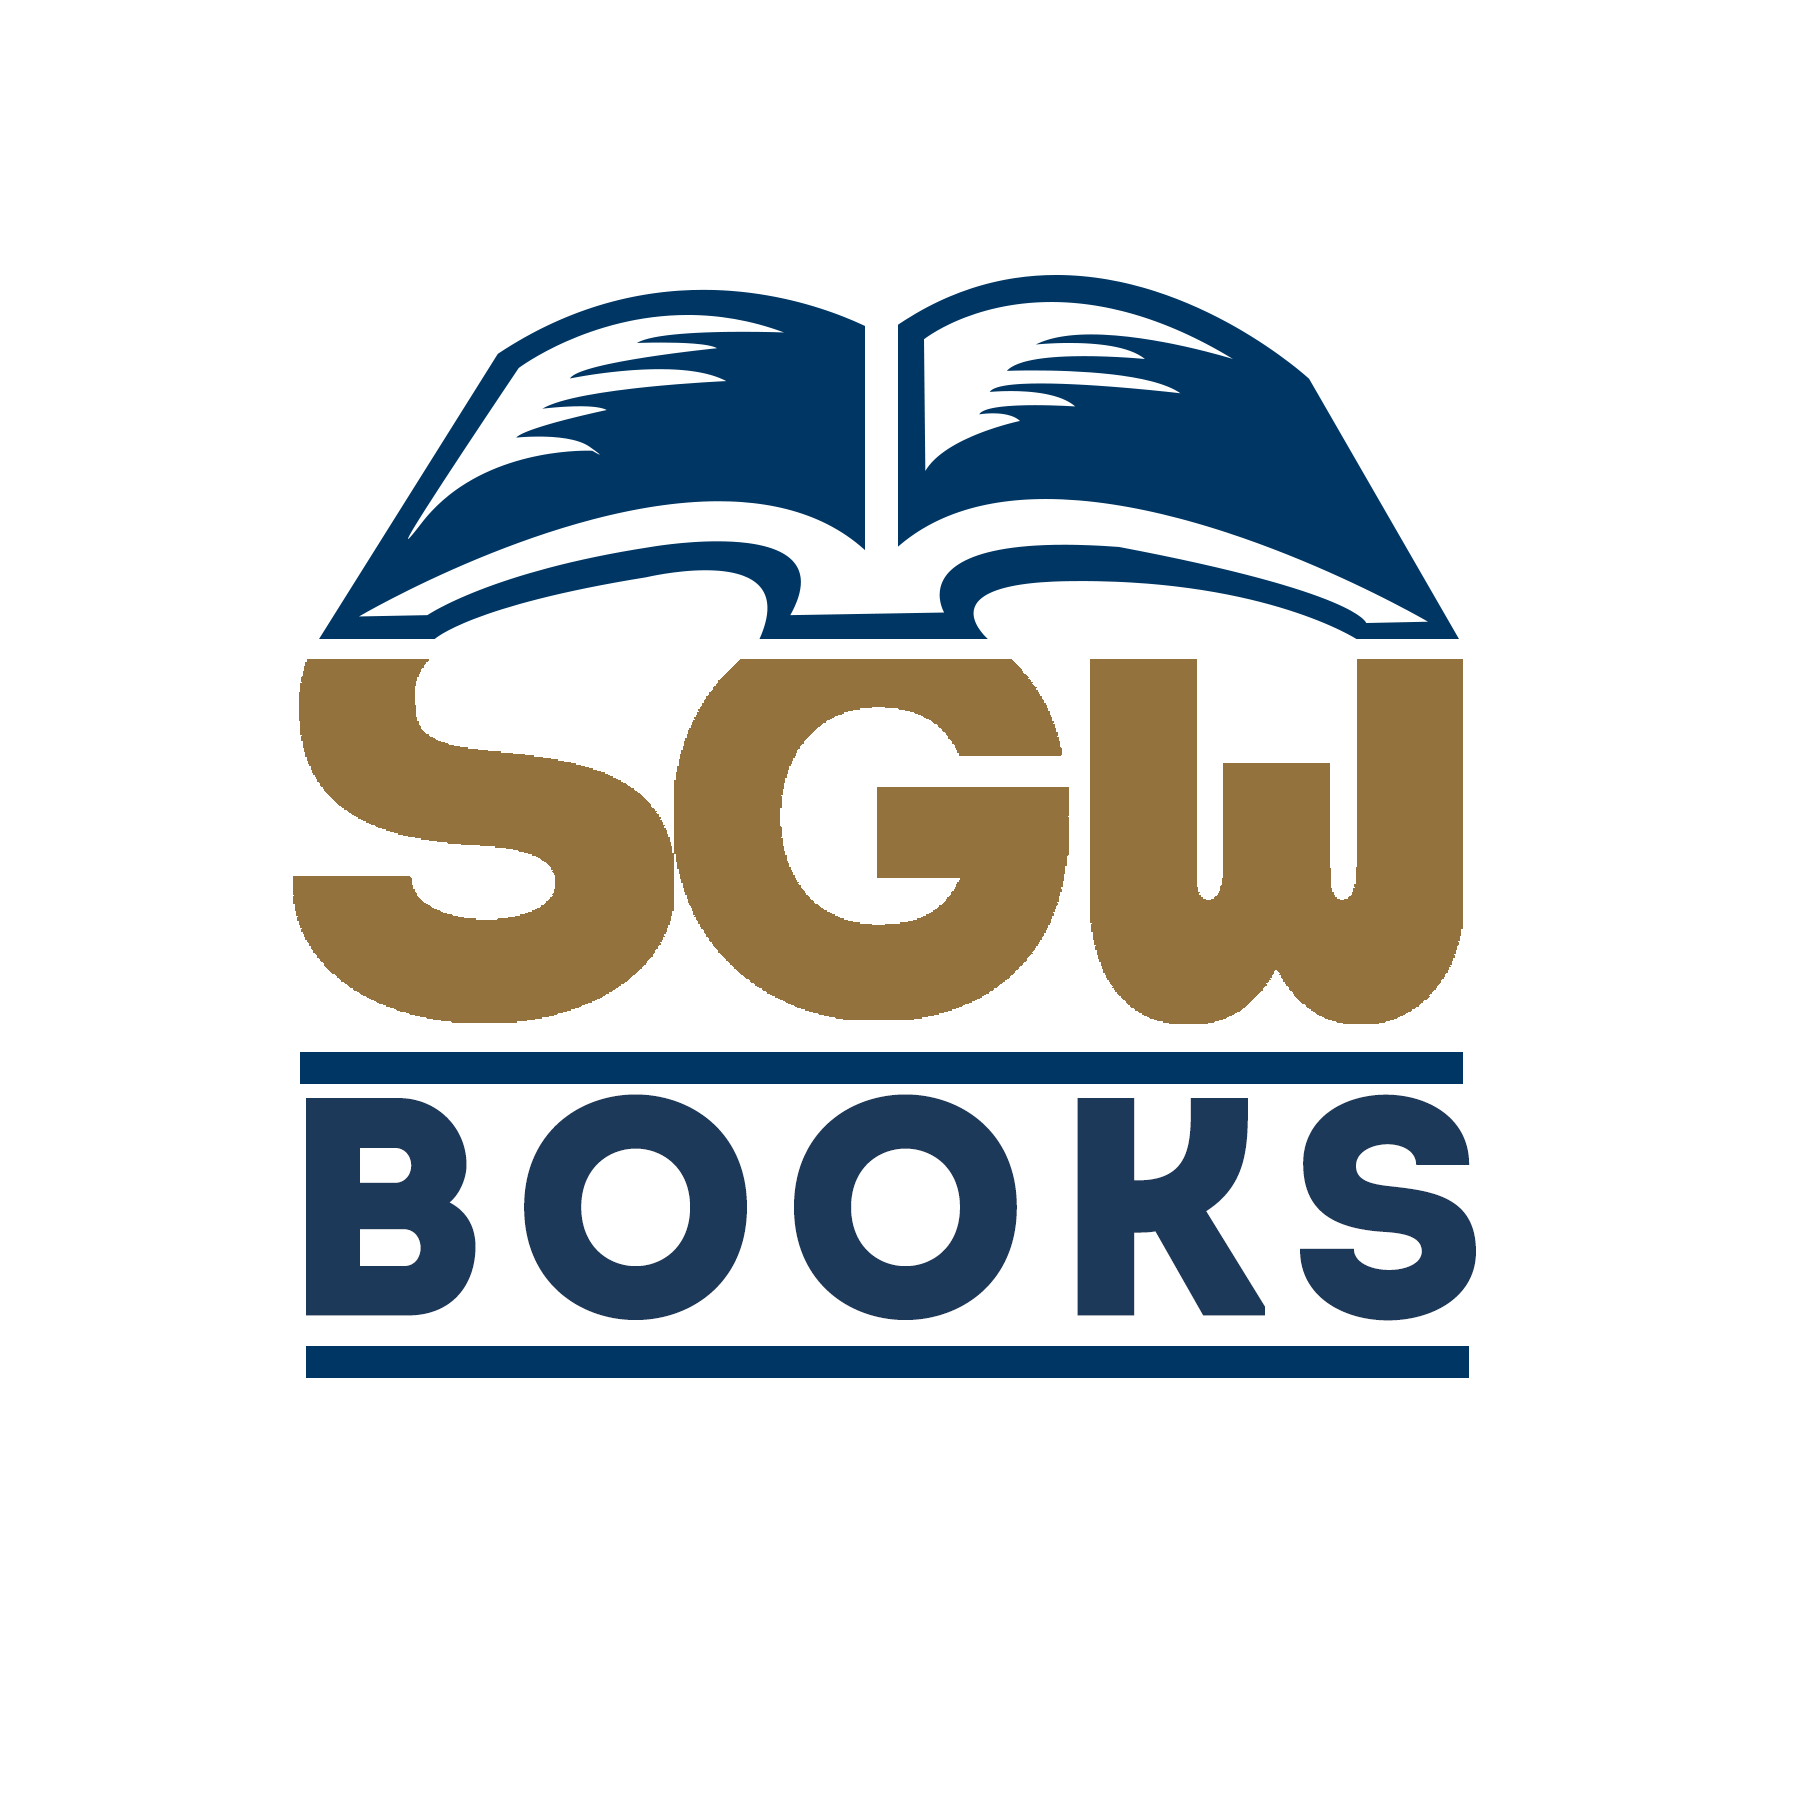 Logo Design by Lemuel Arvin Tanzo - Entry No. 72 in the Logo Design Contest SGW Books Logo Design.